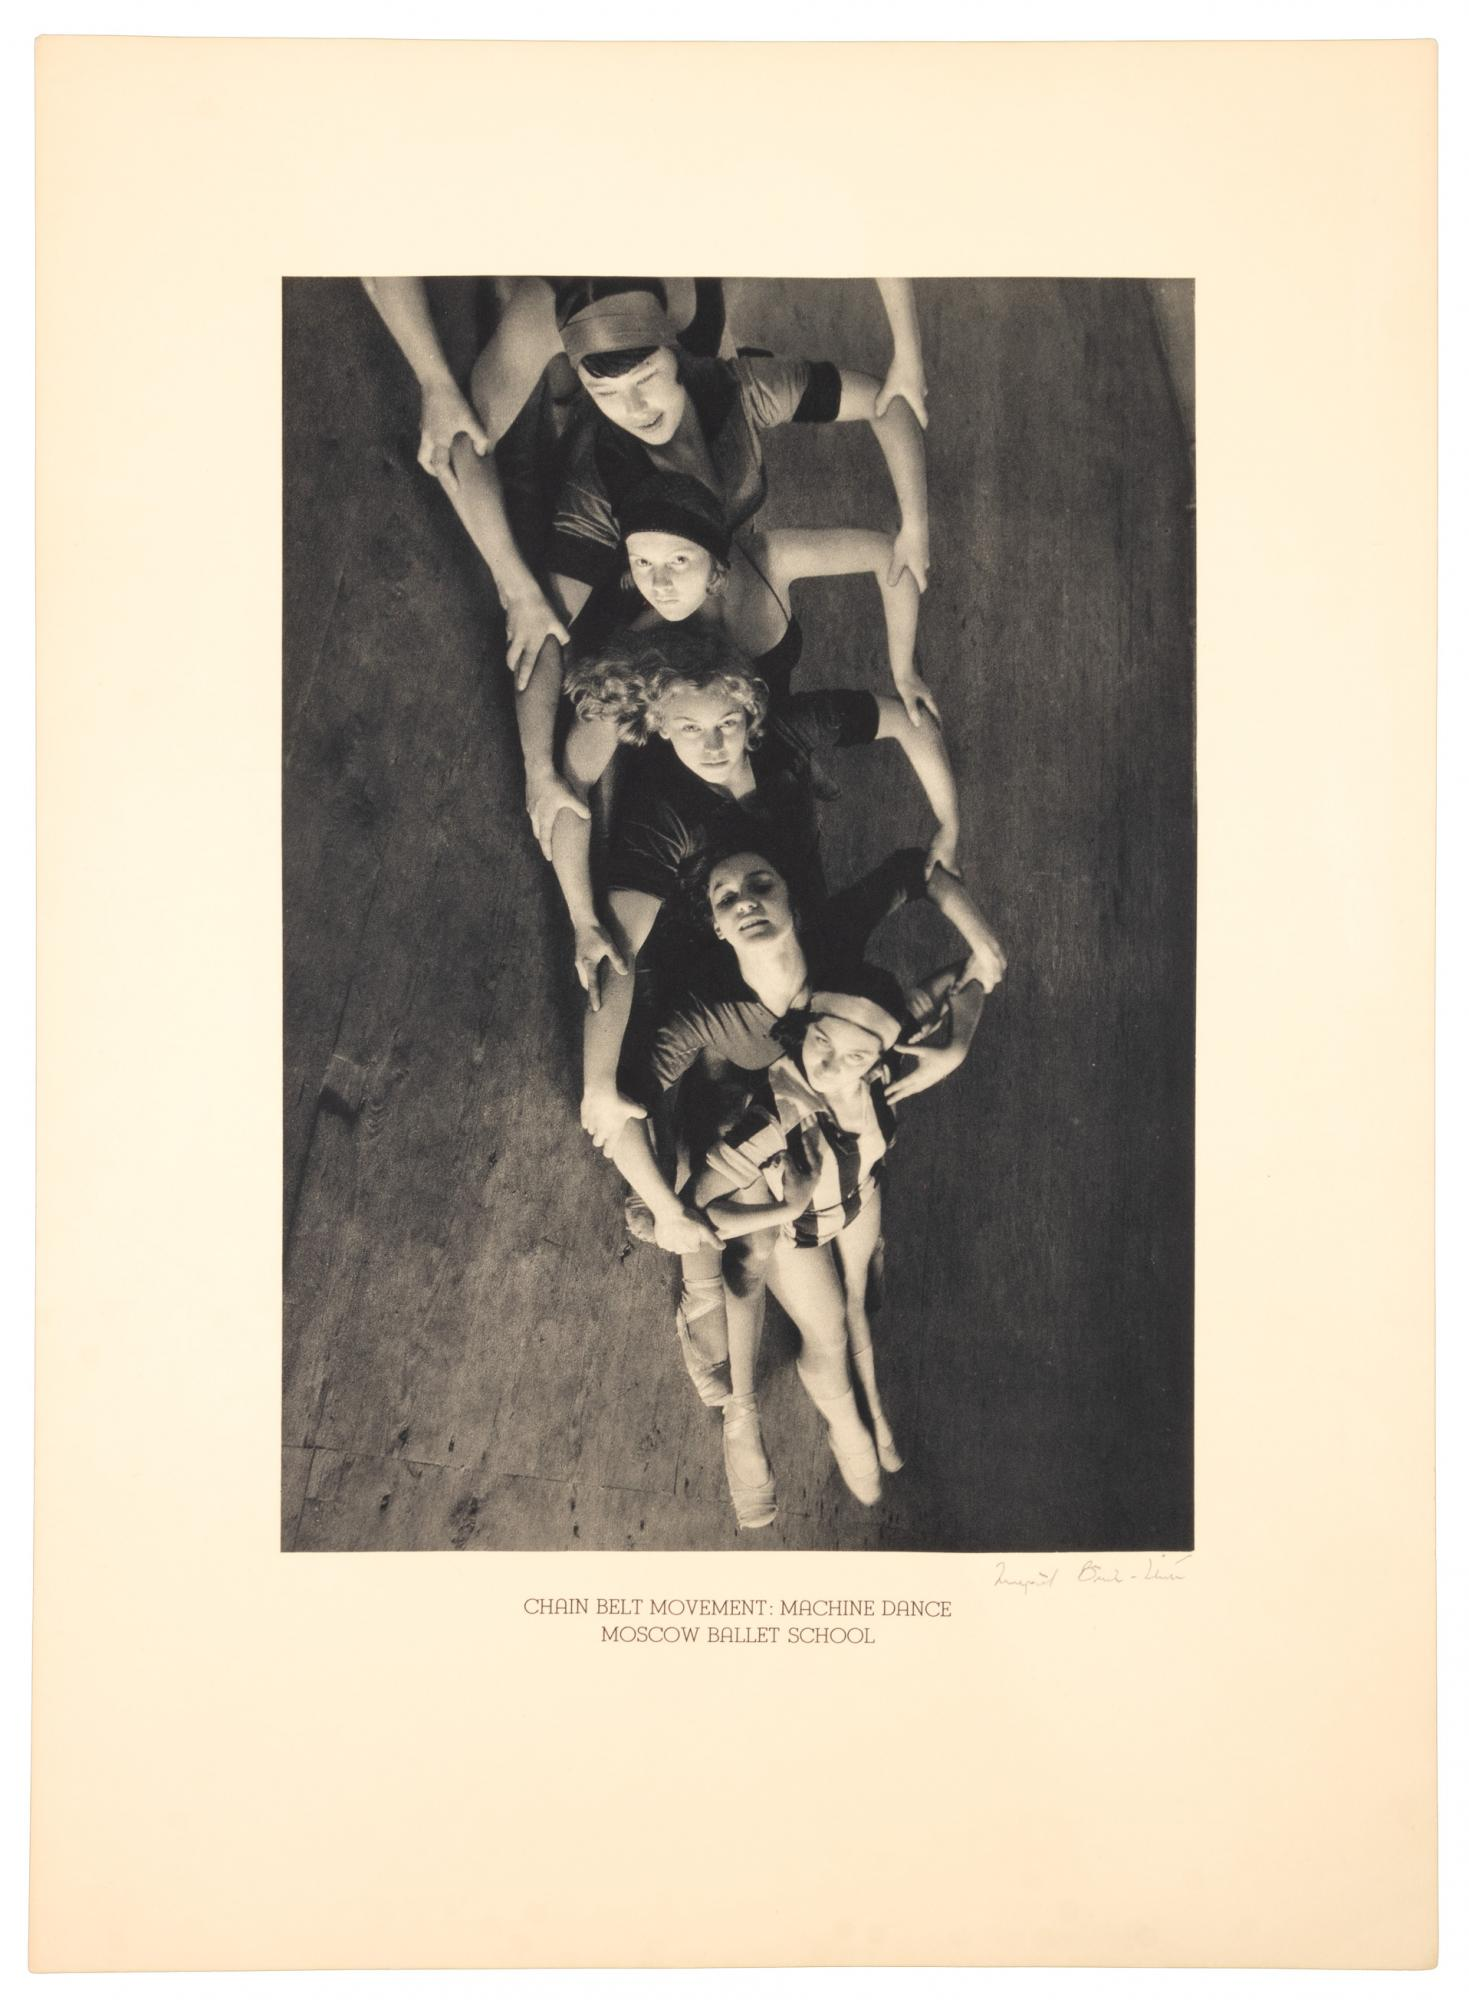 Siged by Margaret Bourke-White